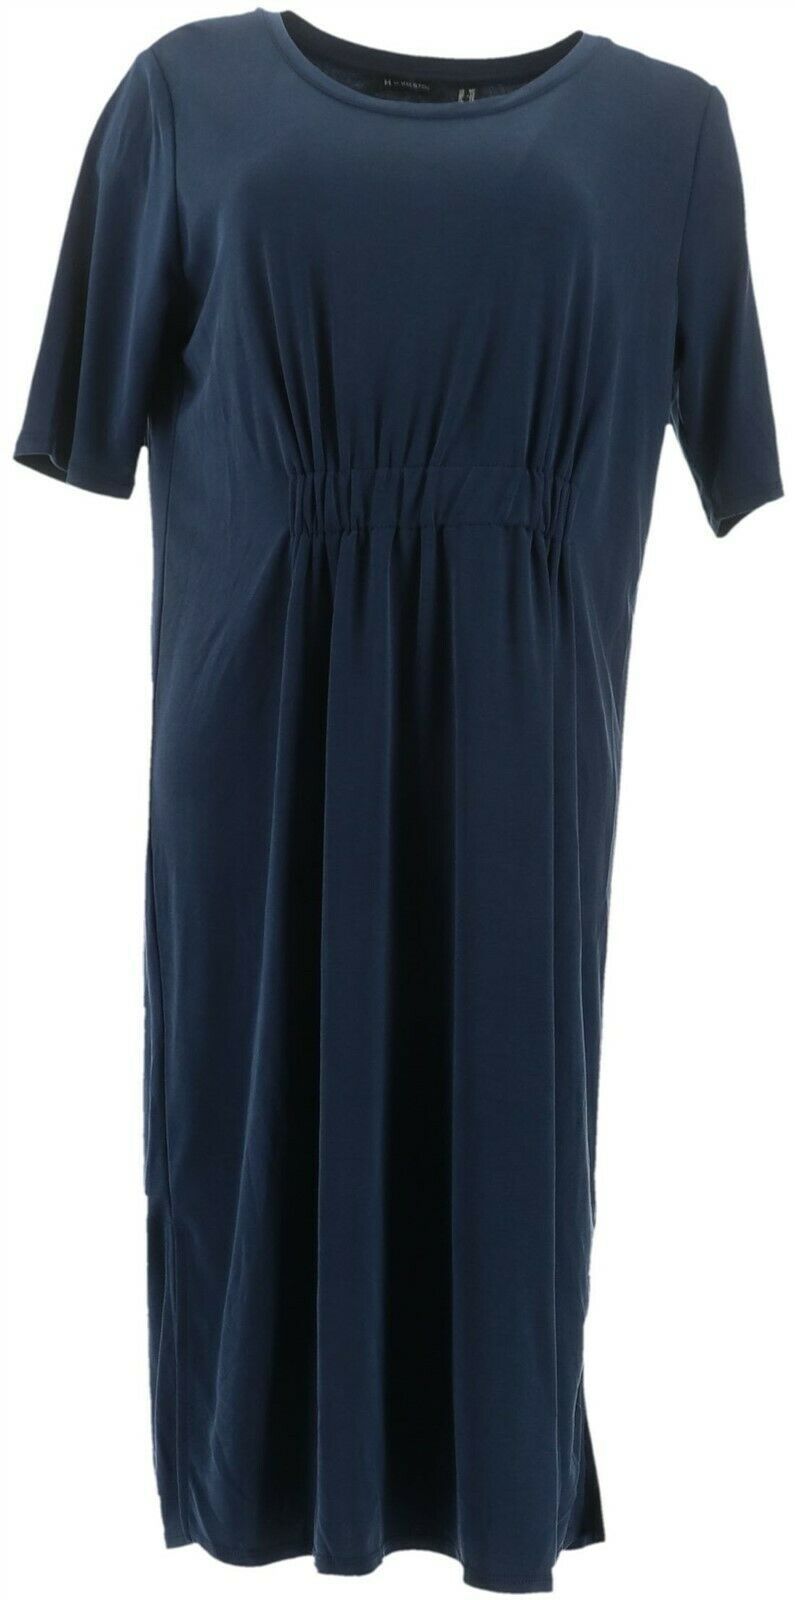 Primary image for H Halston Petite Ruched Waist Elbow-Sleeve Midi Dress Navy PXXS NEW A351205